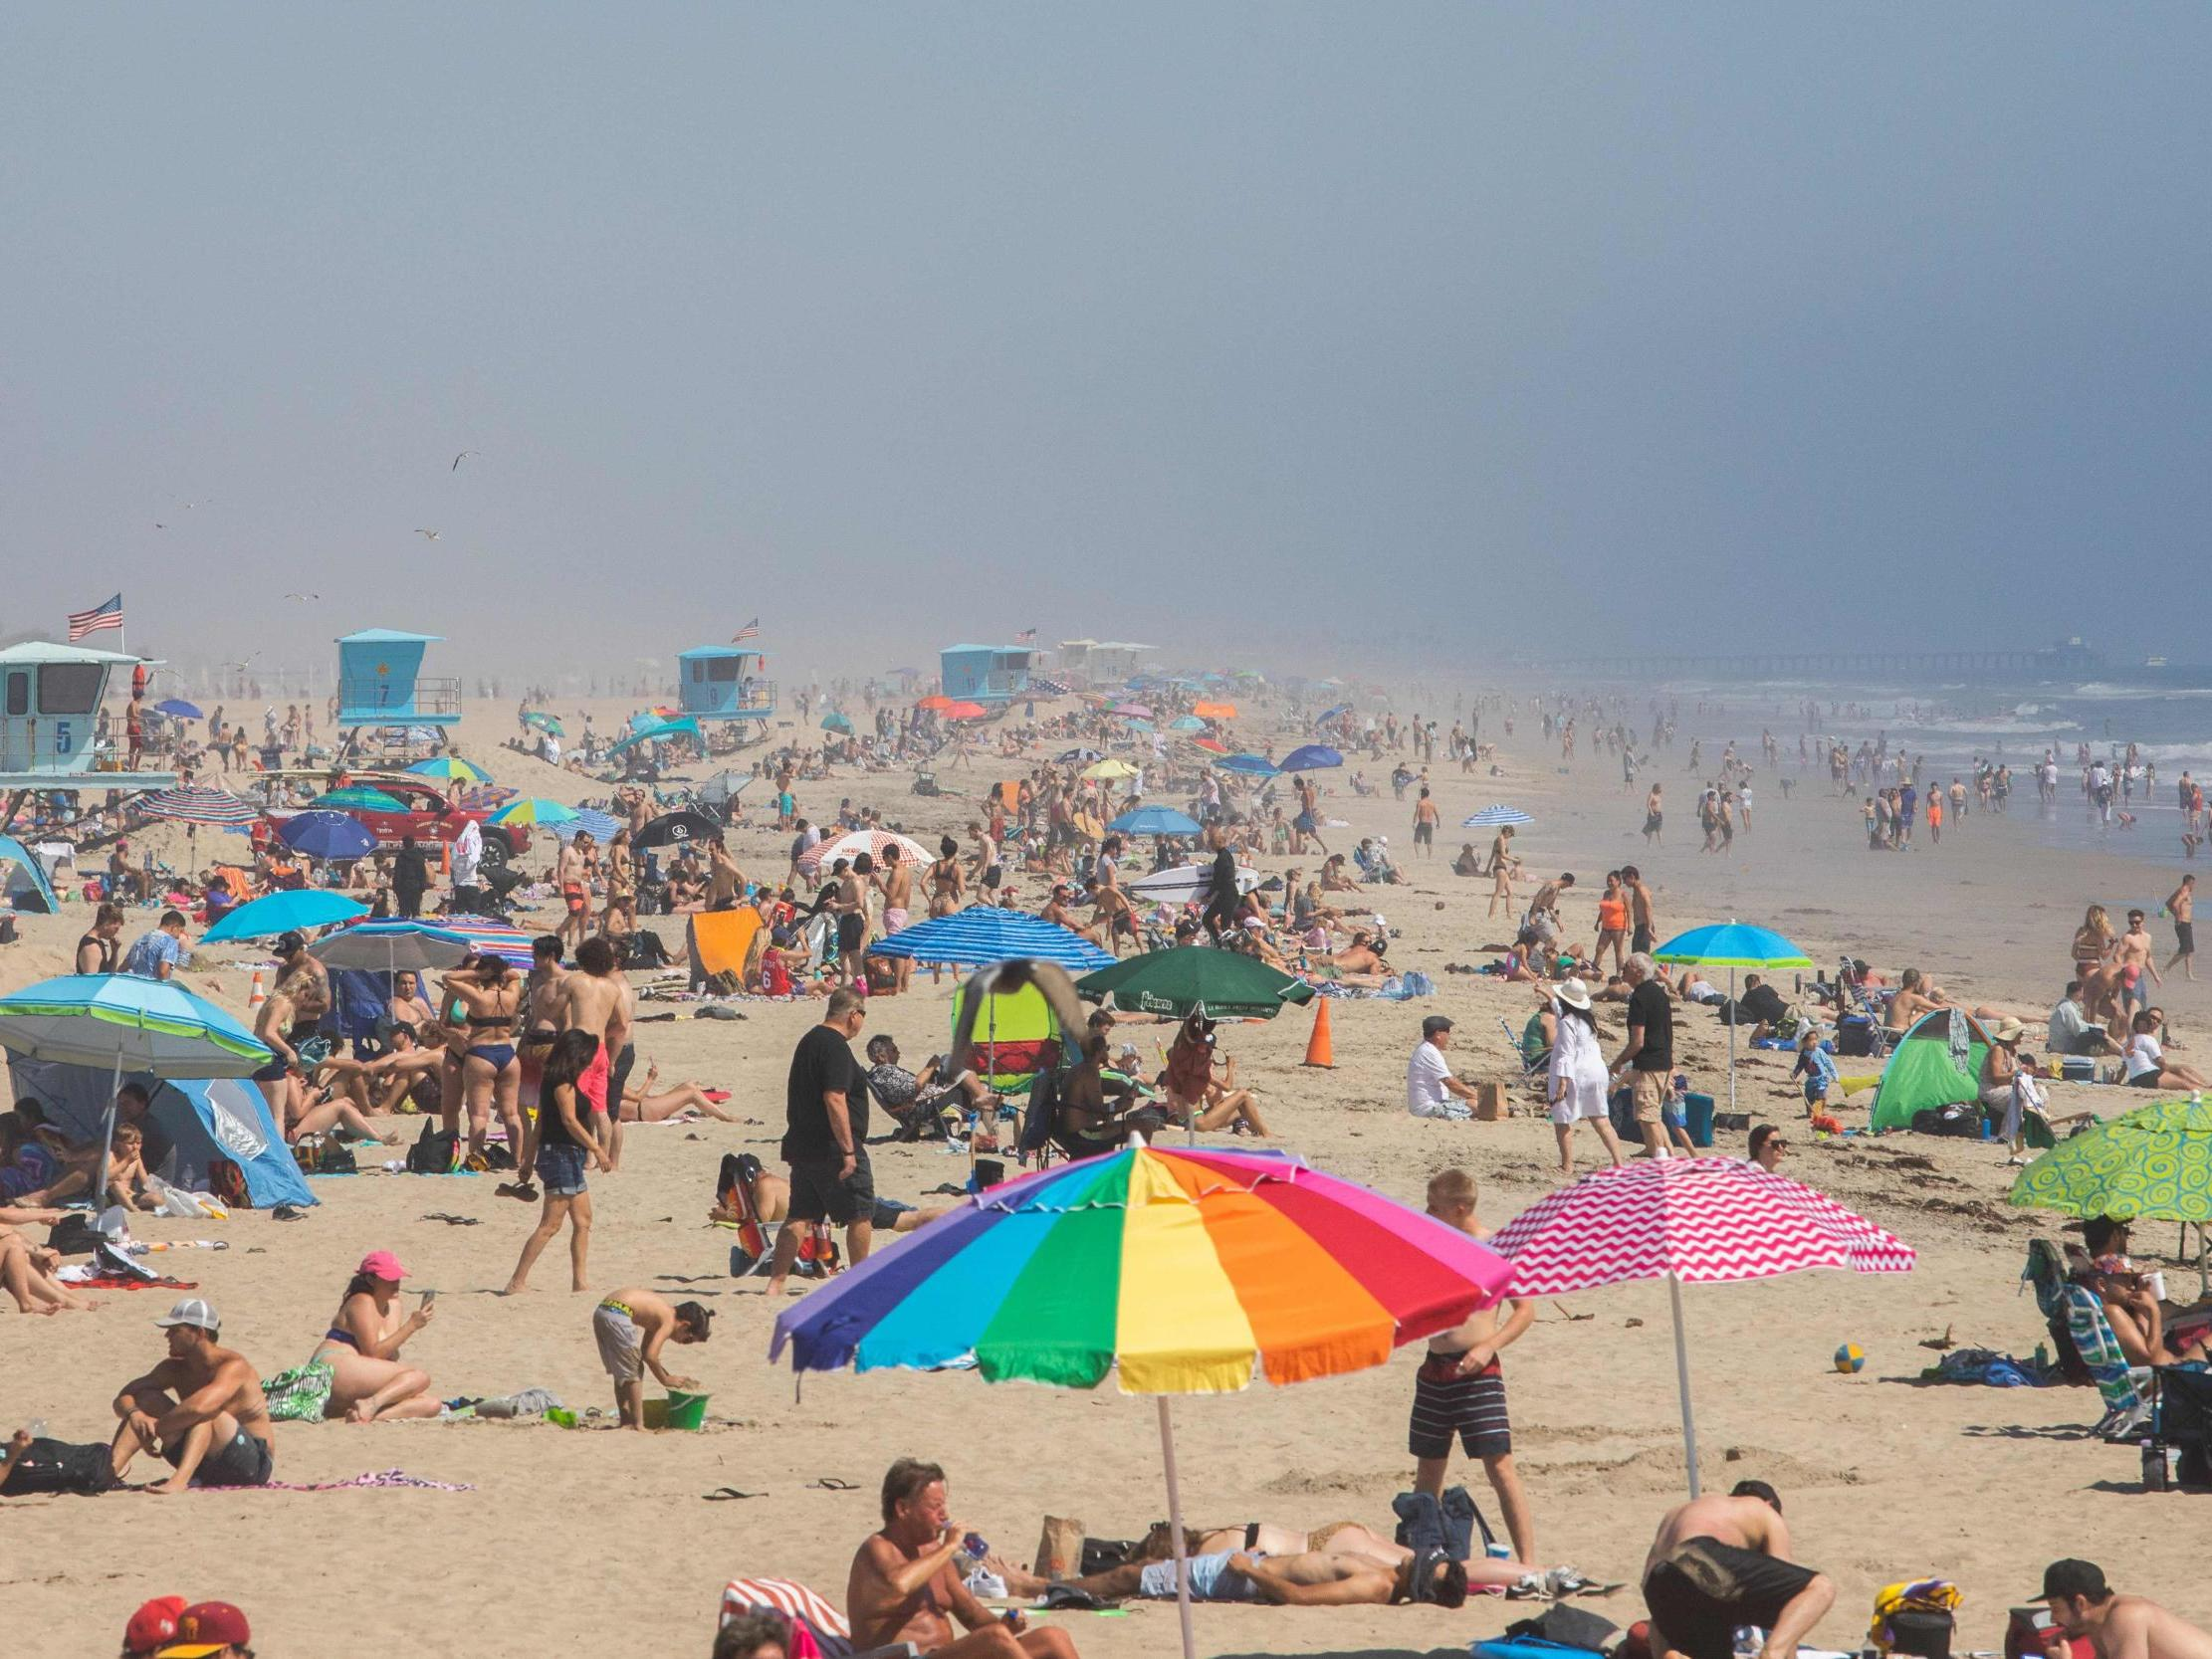 All California beaches to be closed following weekend crowding, police memo says  photo